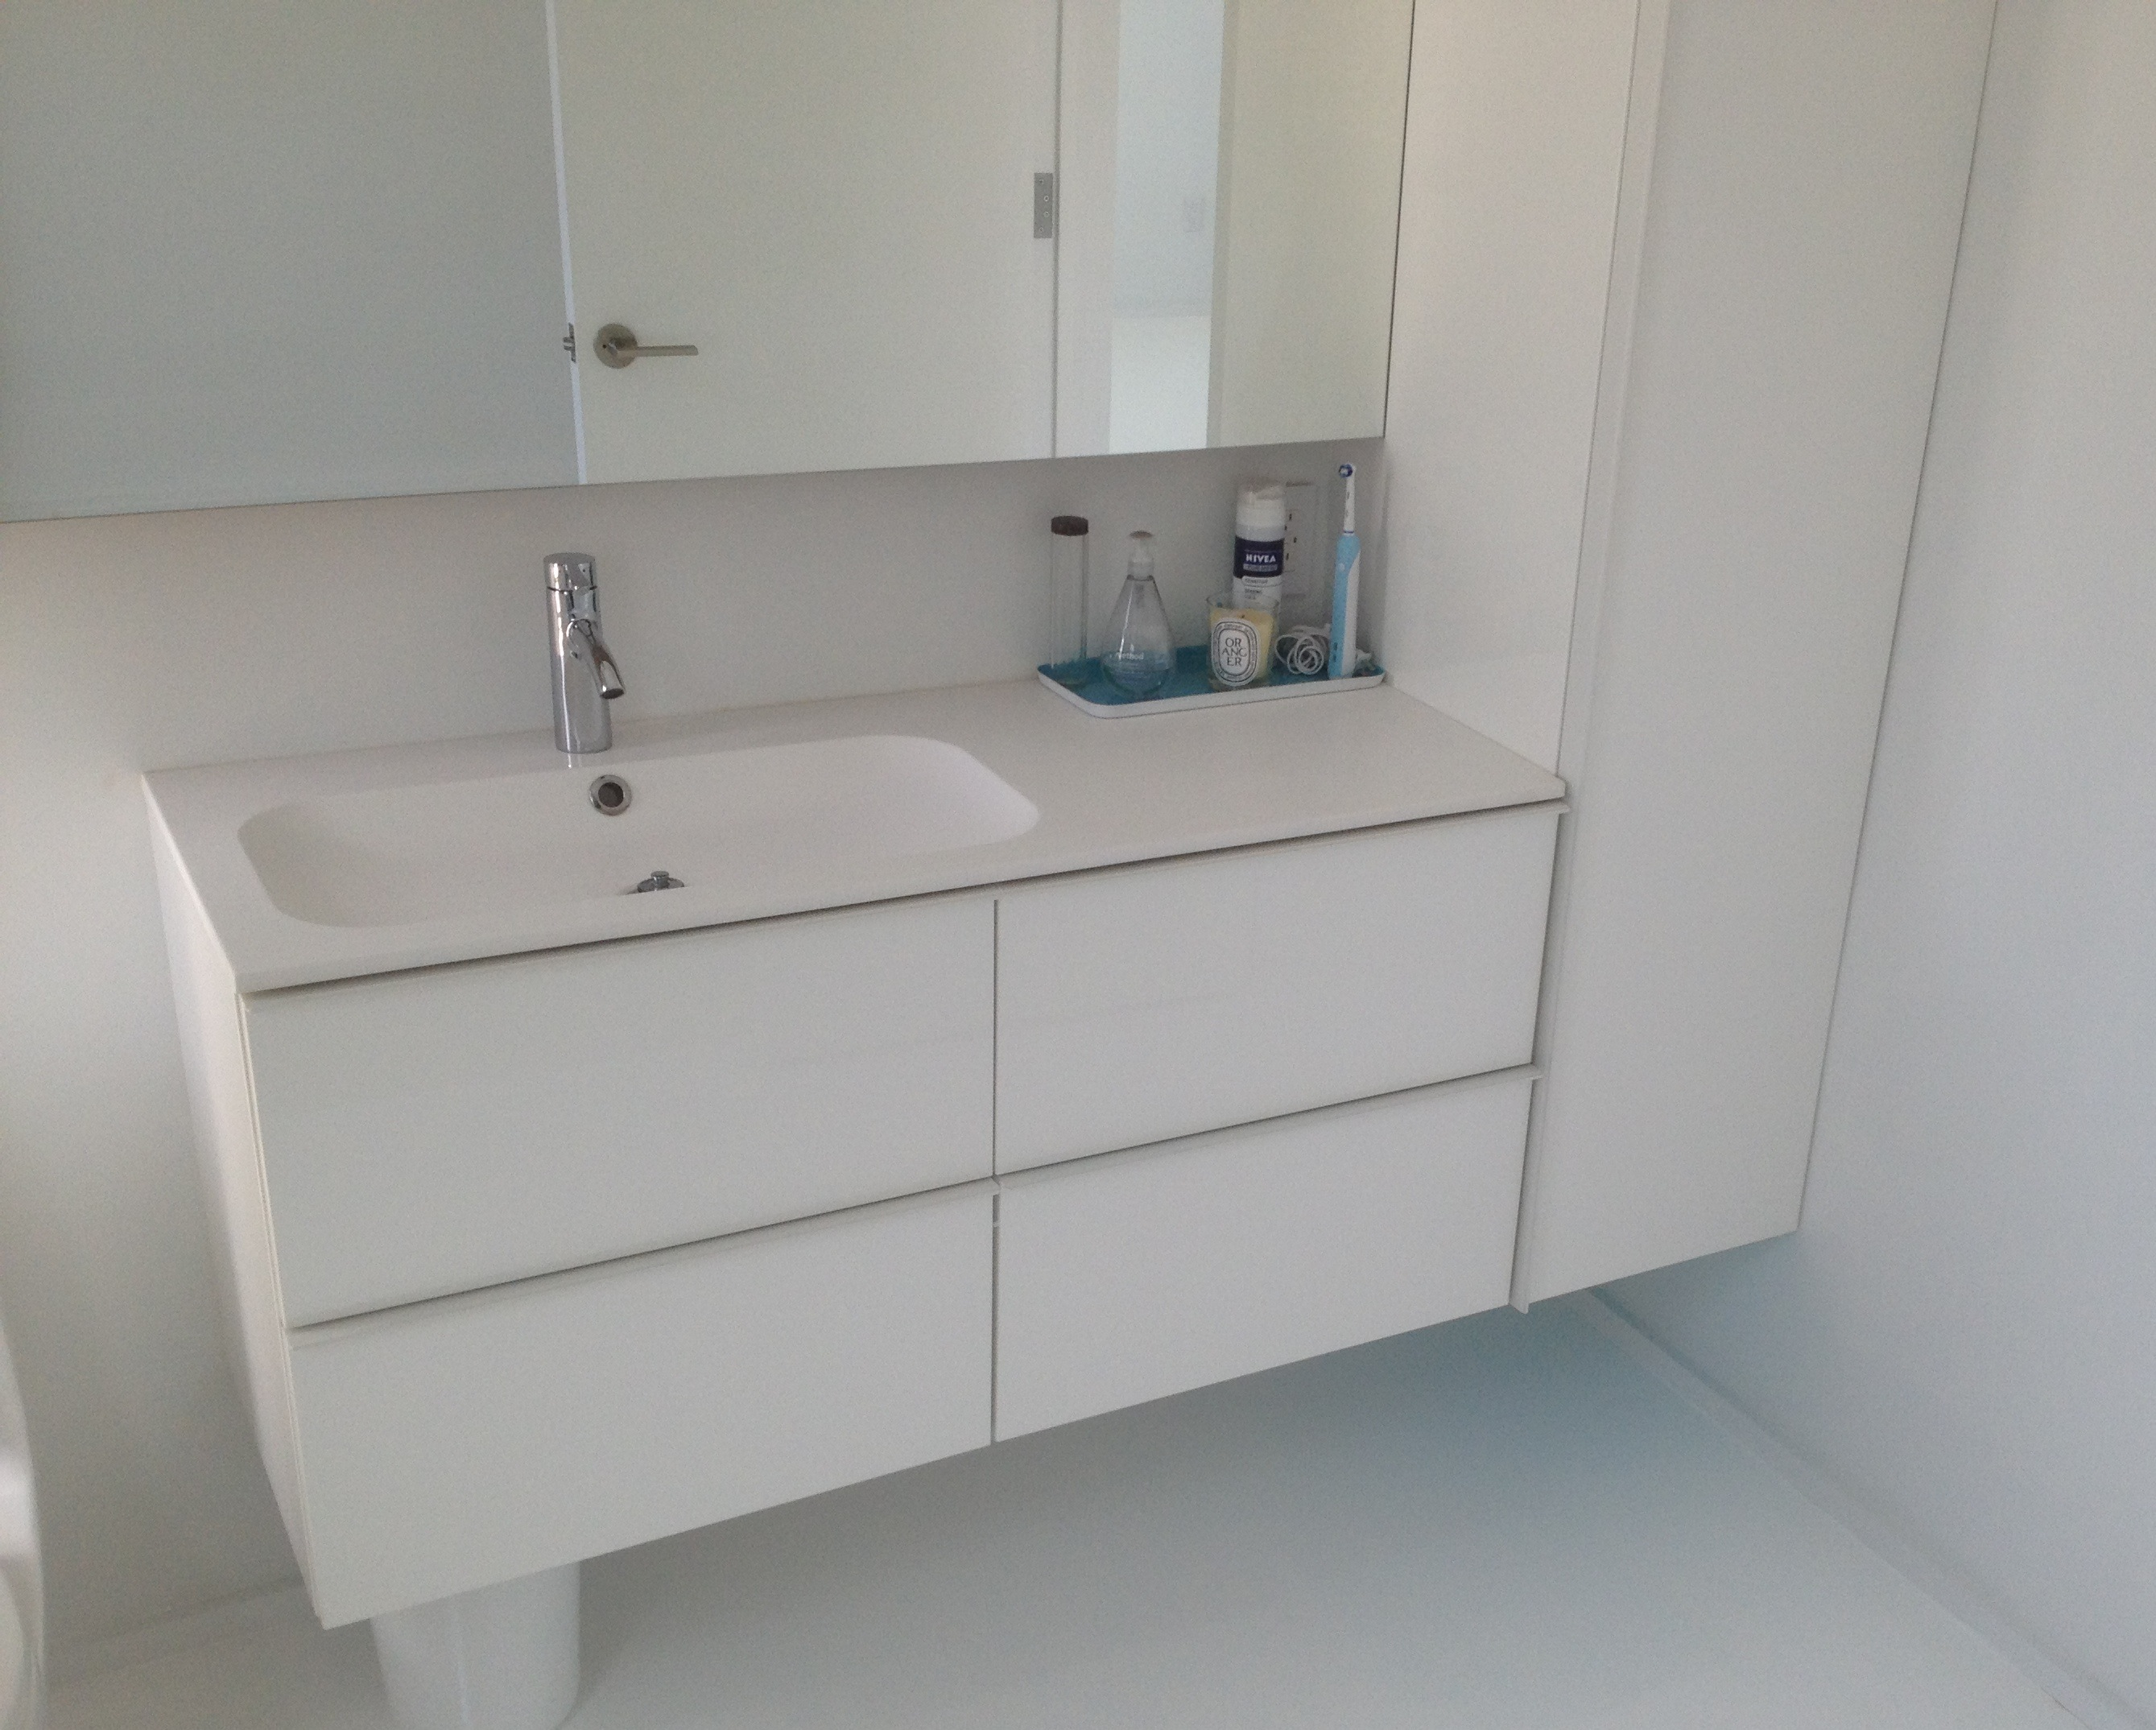 ikea cabinetry and sink